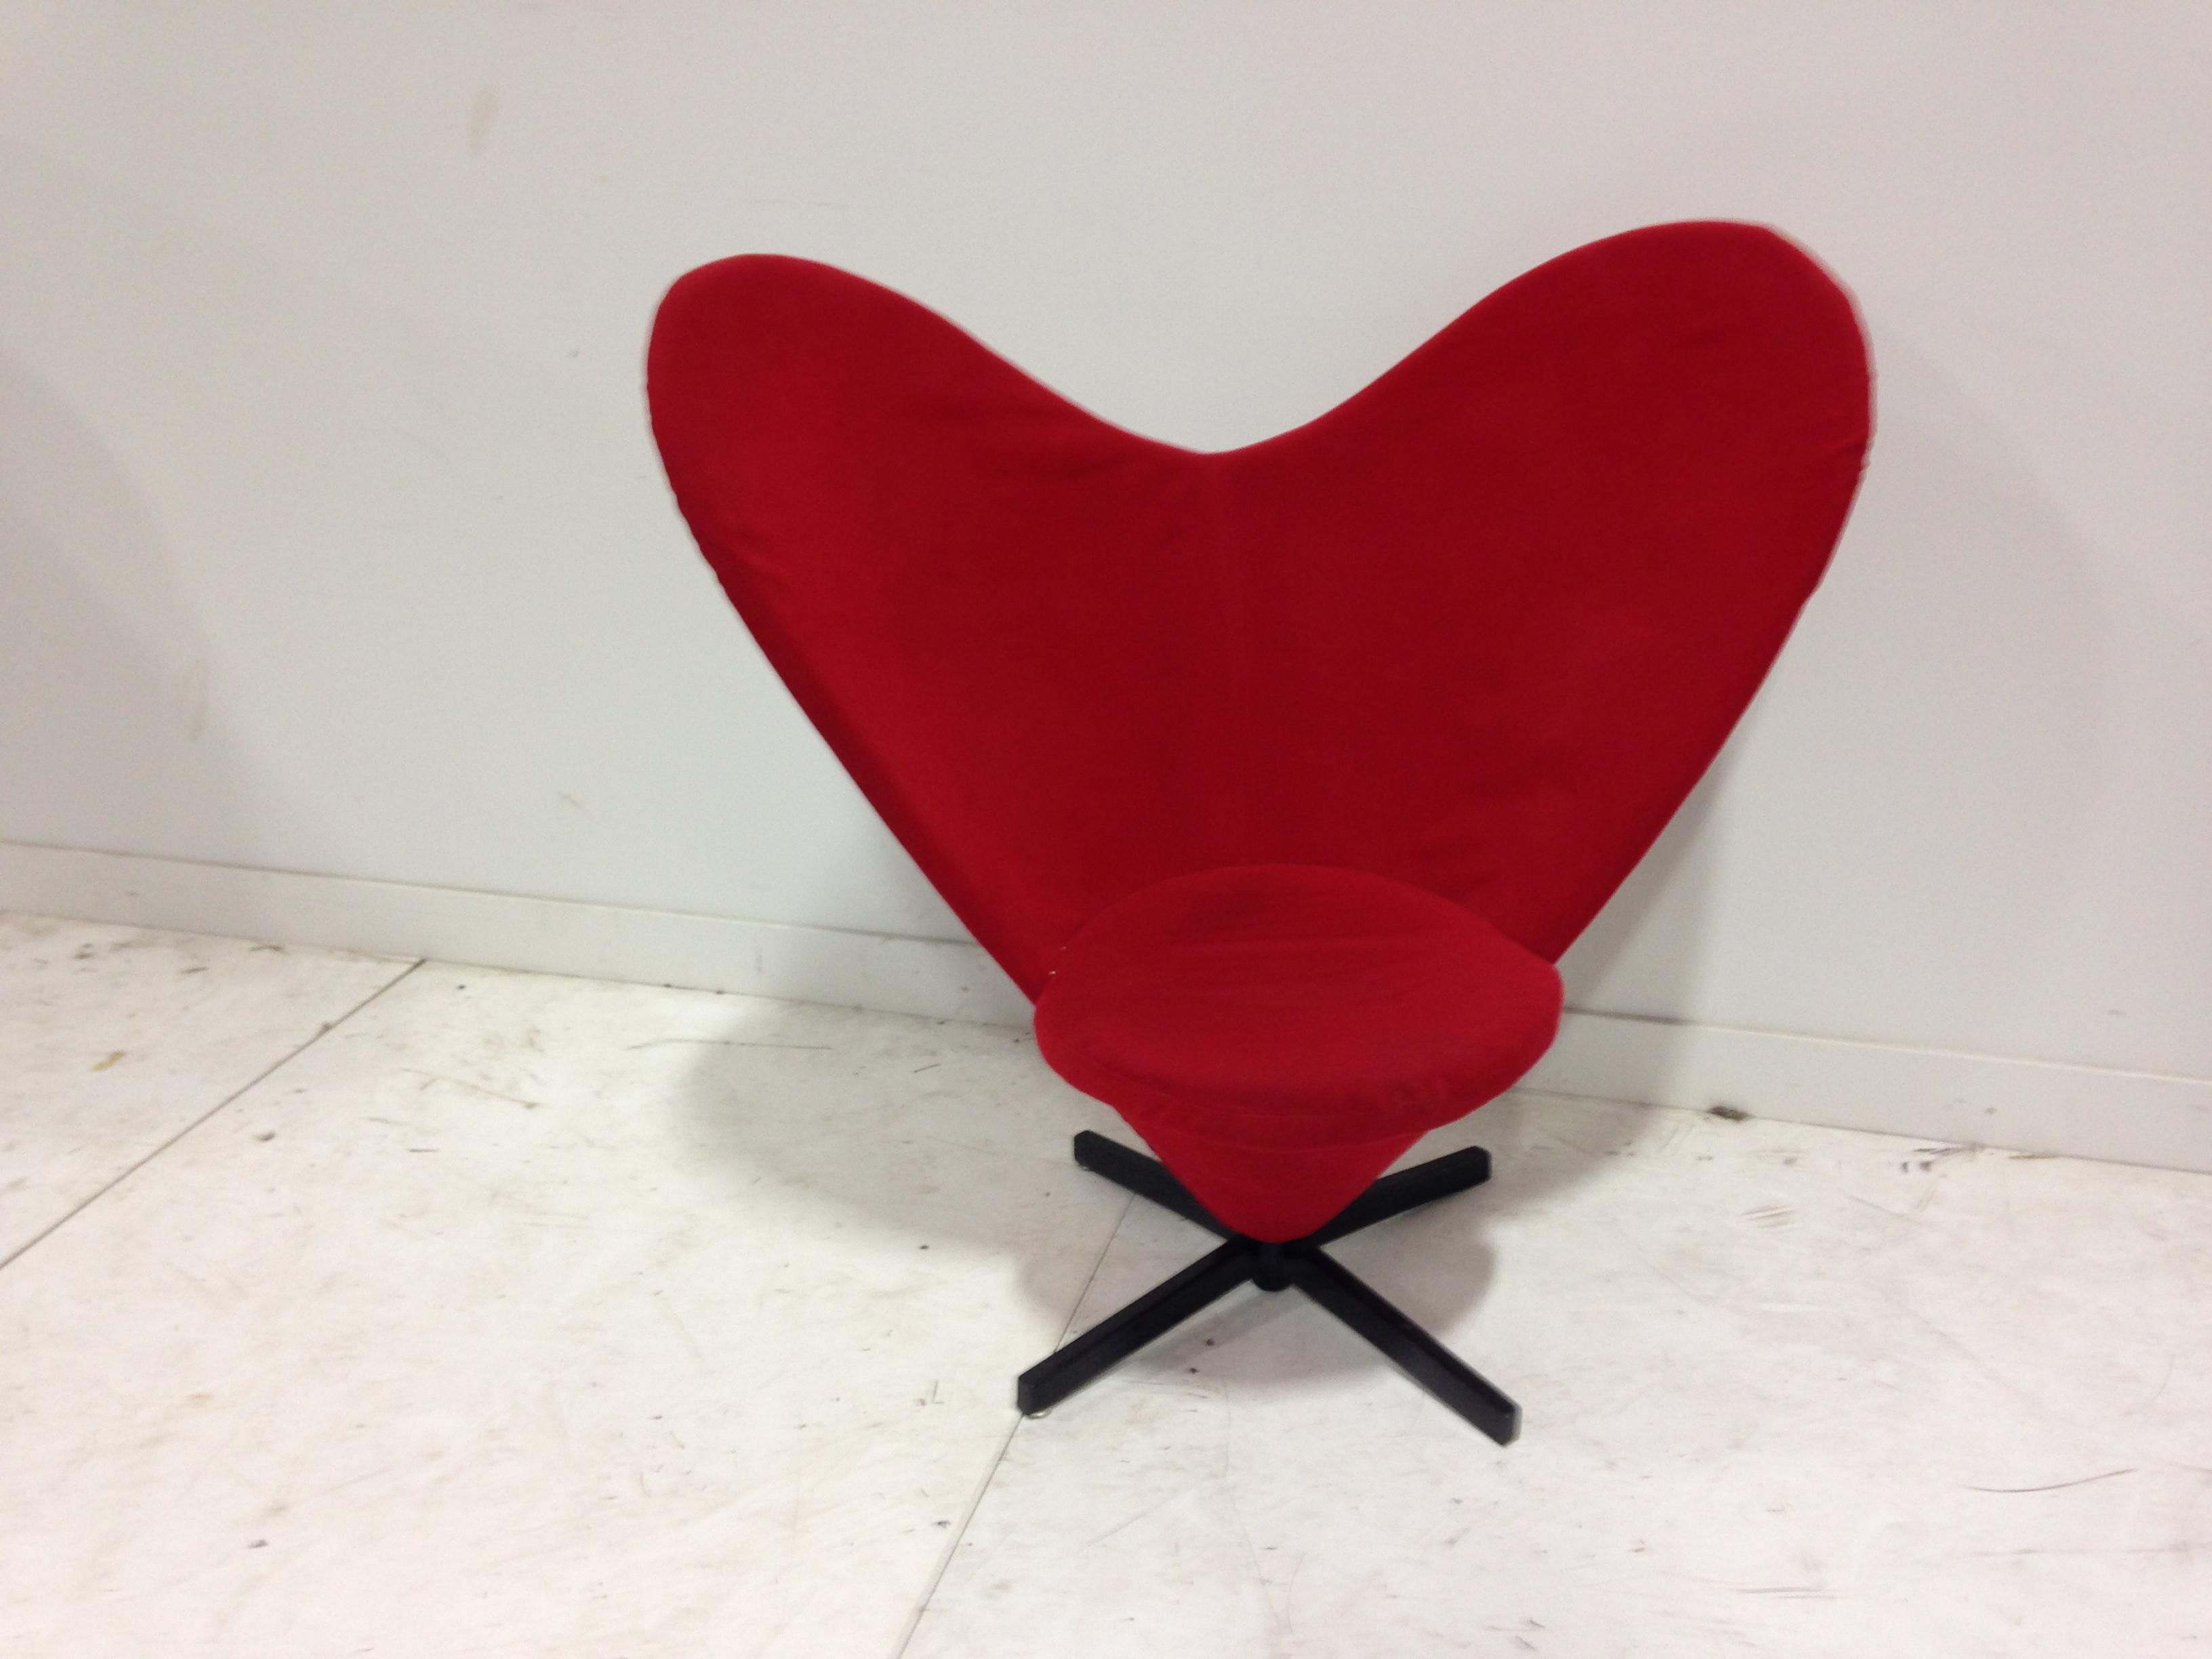 Ordinaire Red Heart Shaped Chair